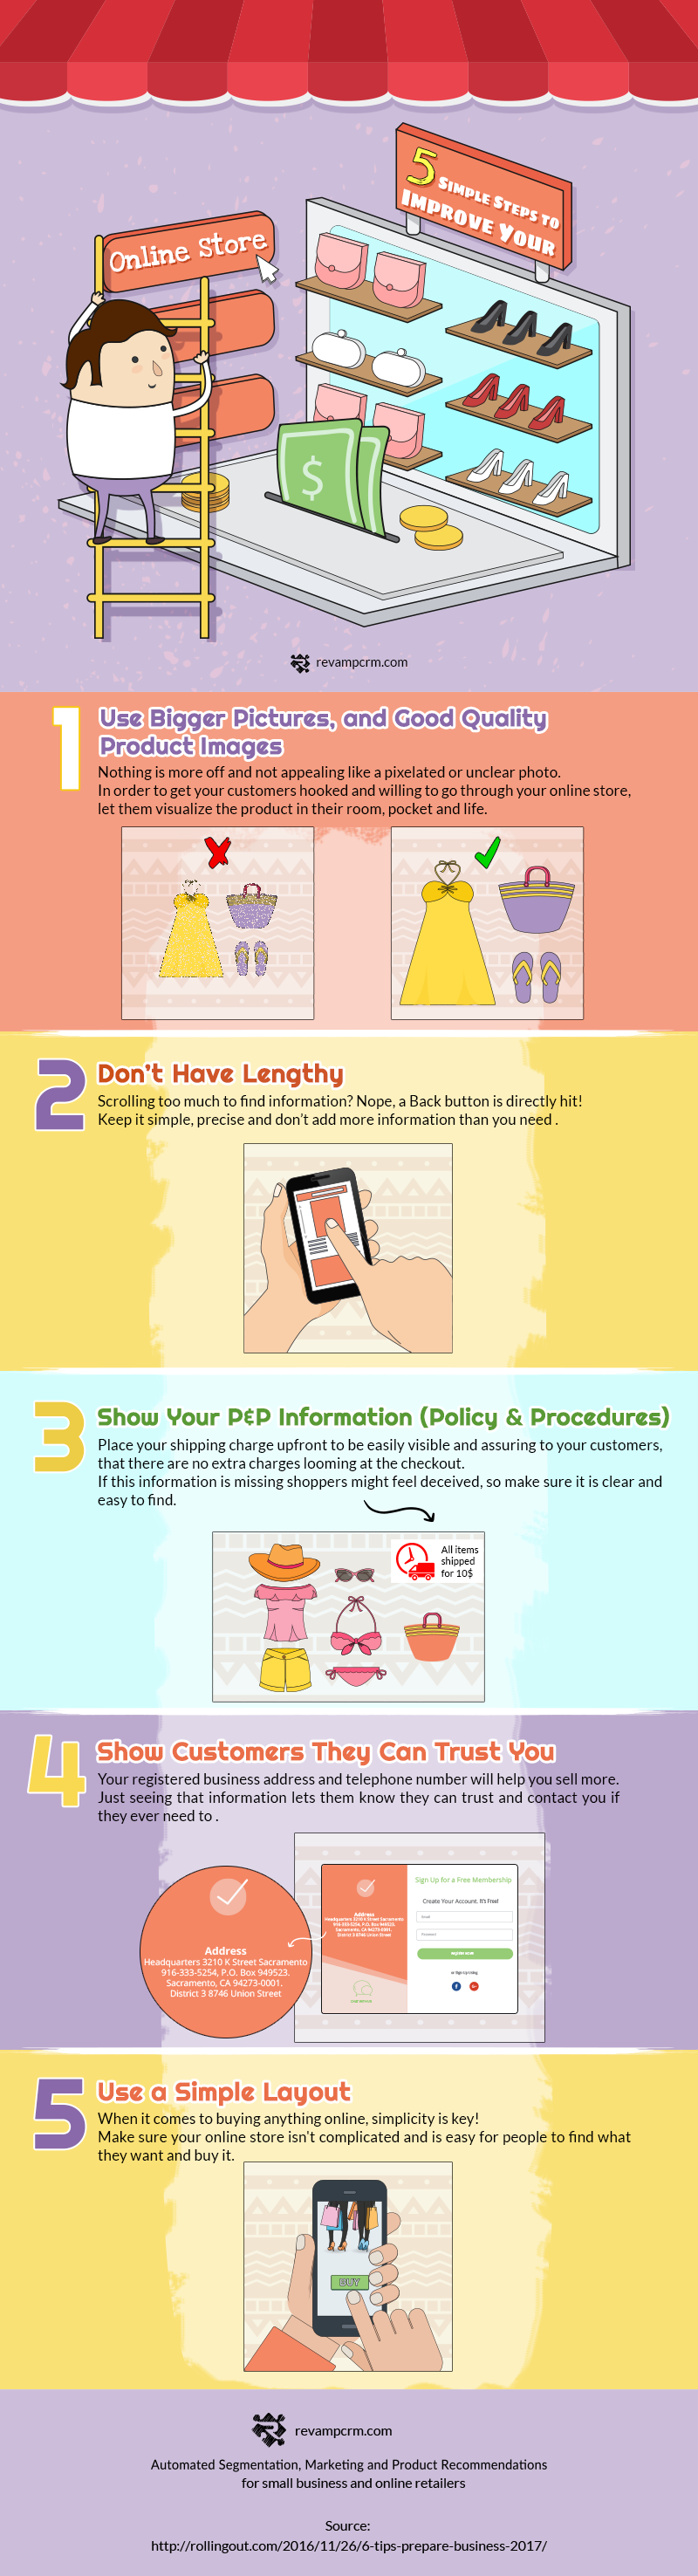 5_Simple_Steps_to_Improve_Your_Online_Store_all_points